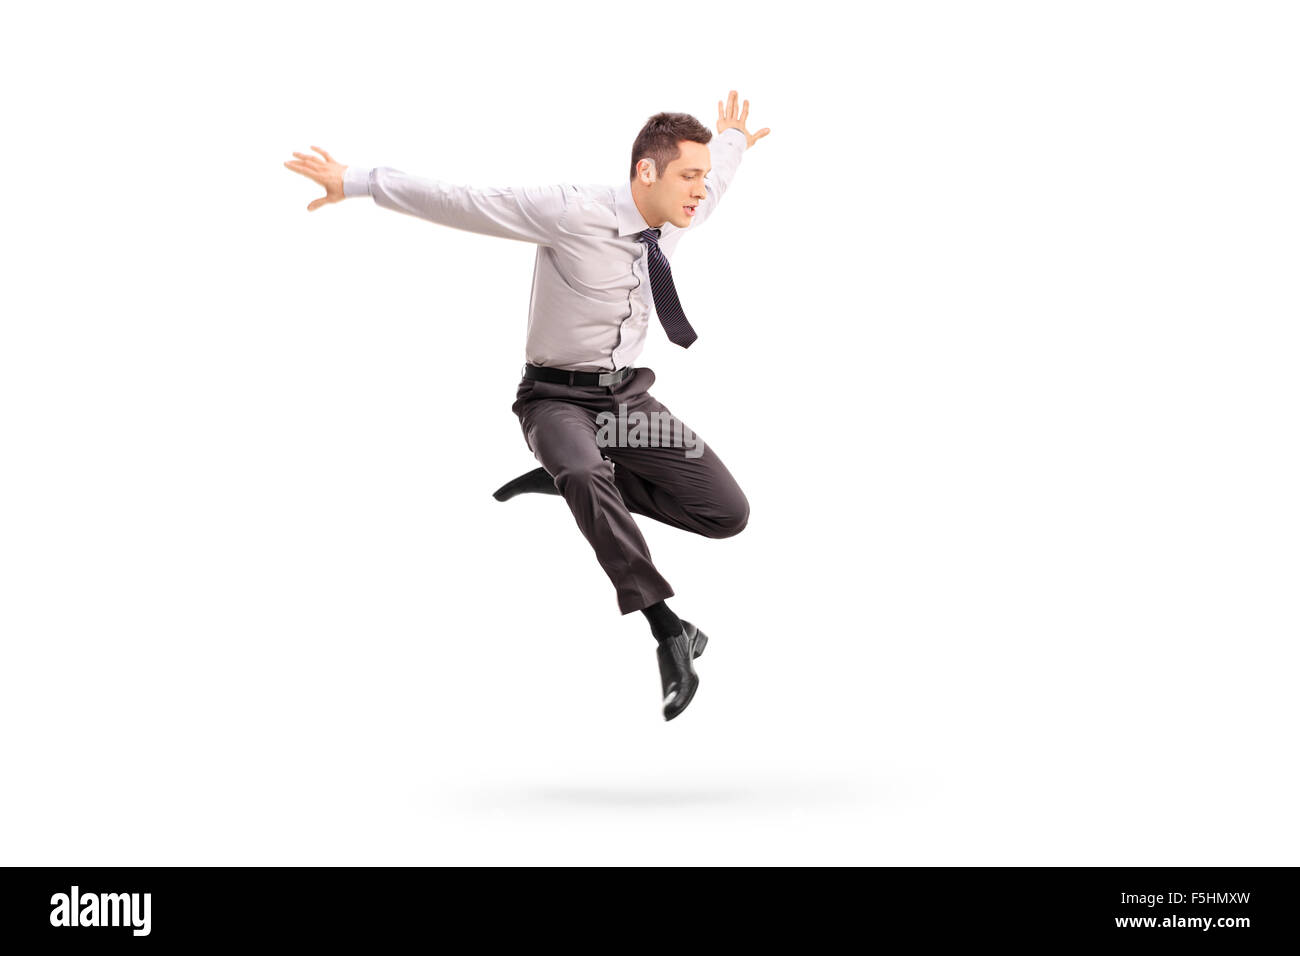 Studio shot of a young businessman jumping in the air isolated on white background - Stock Image